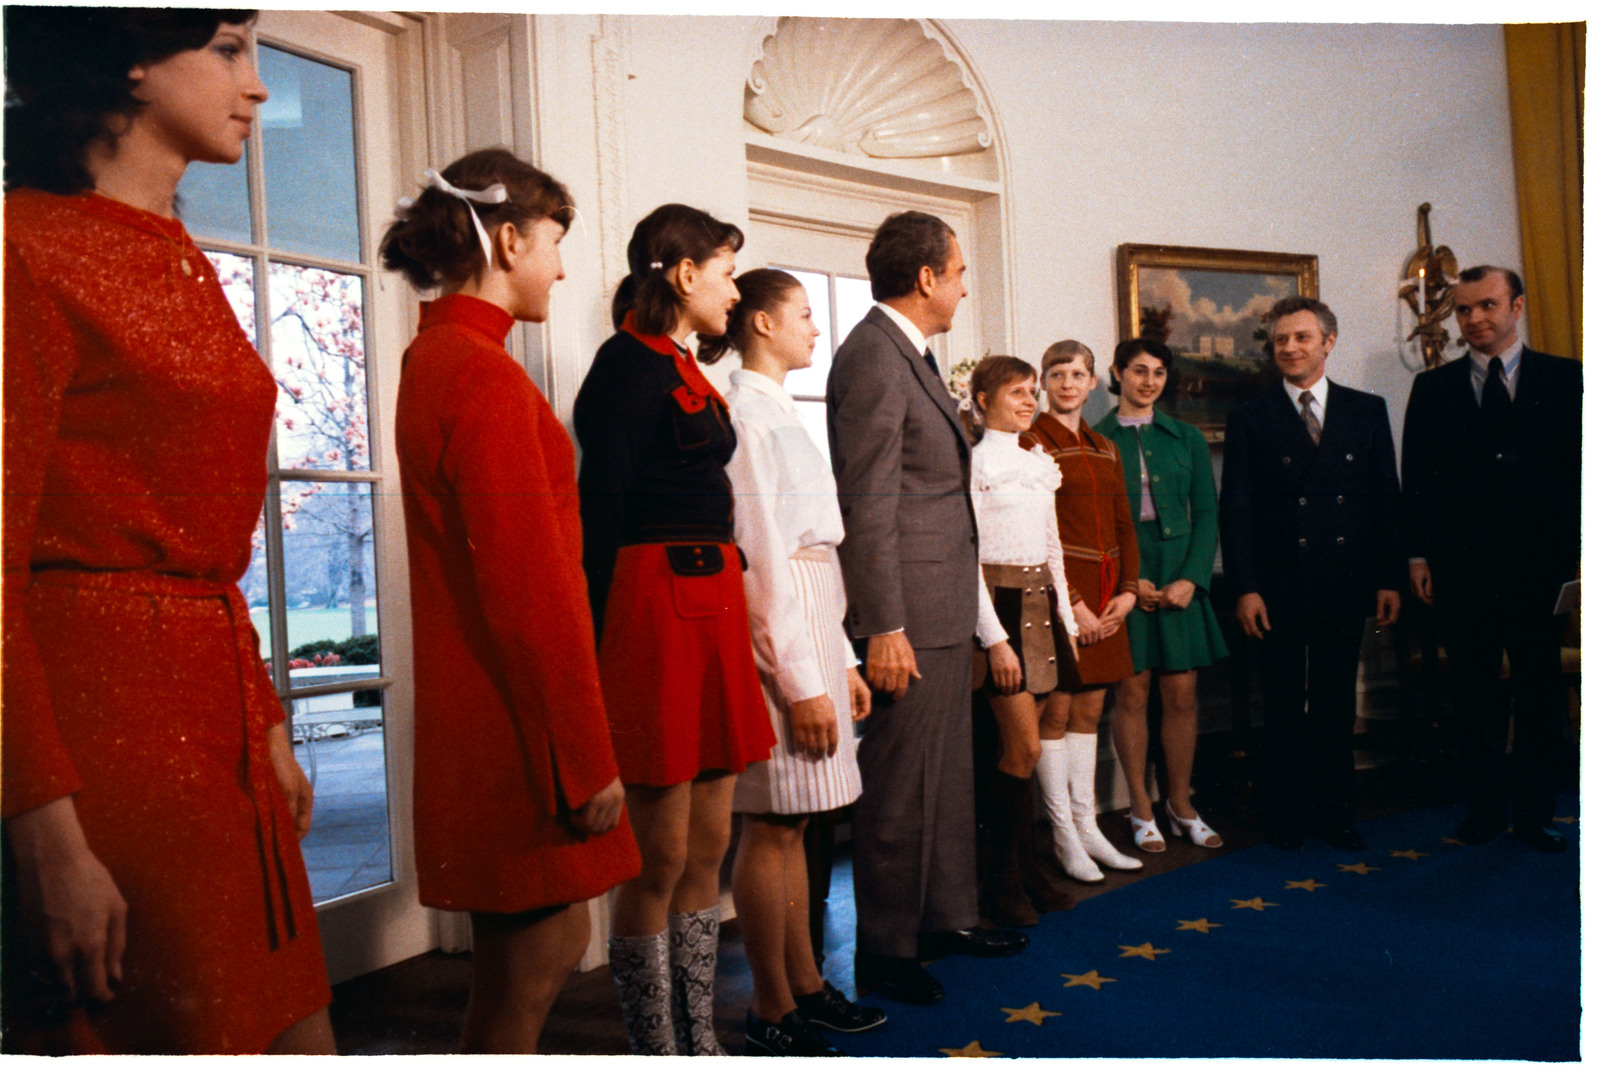 President Richard Nixon Standing in the Oval Office with Members of the Russian Soviet Women's Gymnastics Team, Olympic Gold Medalist Olga Korbut Stands next to Richard Nixon